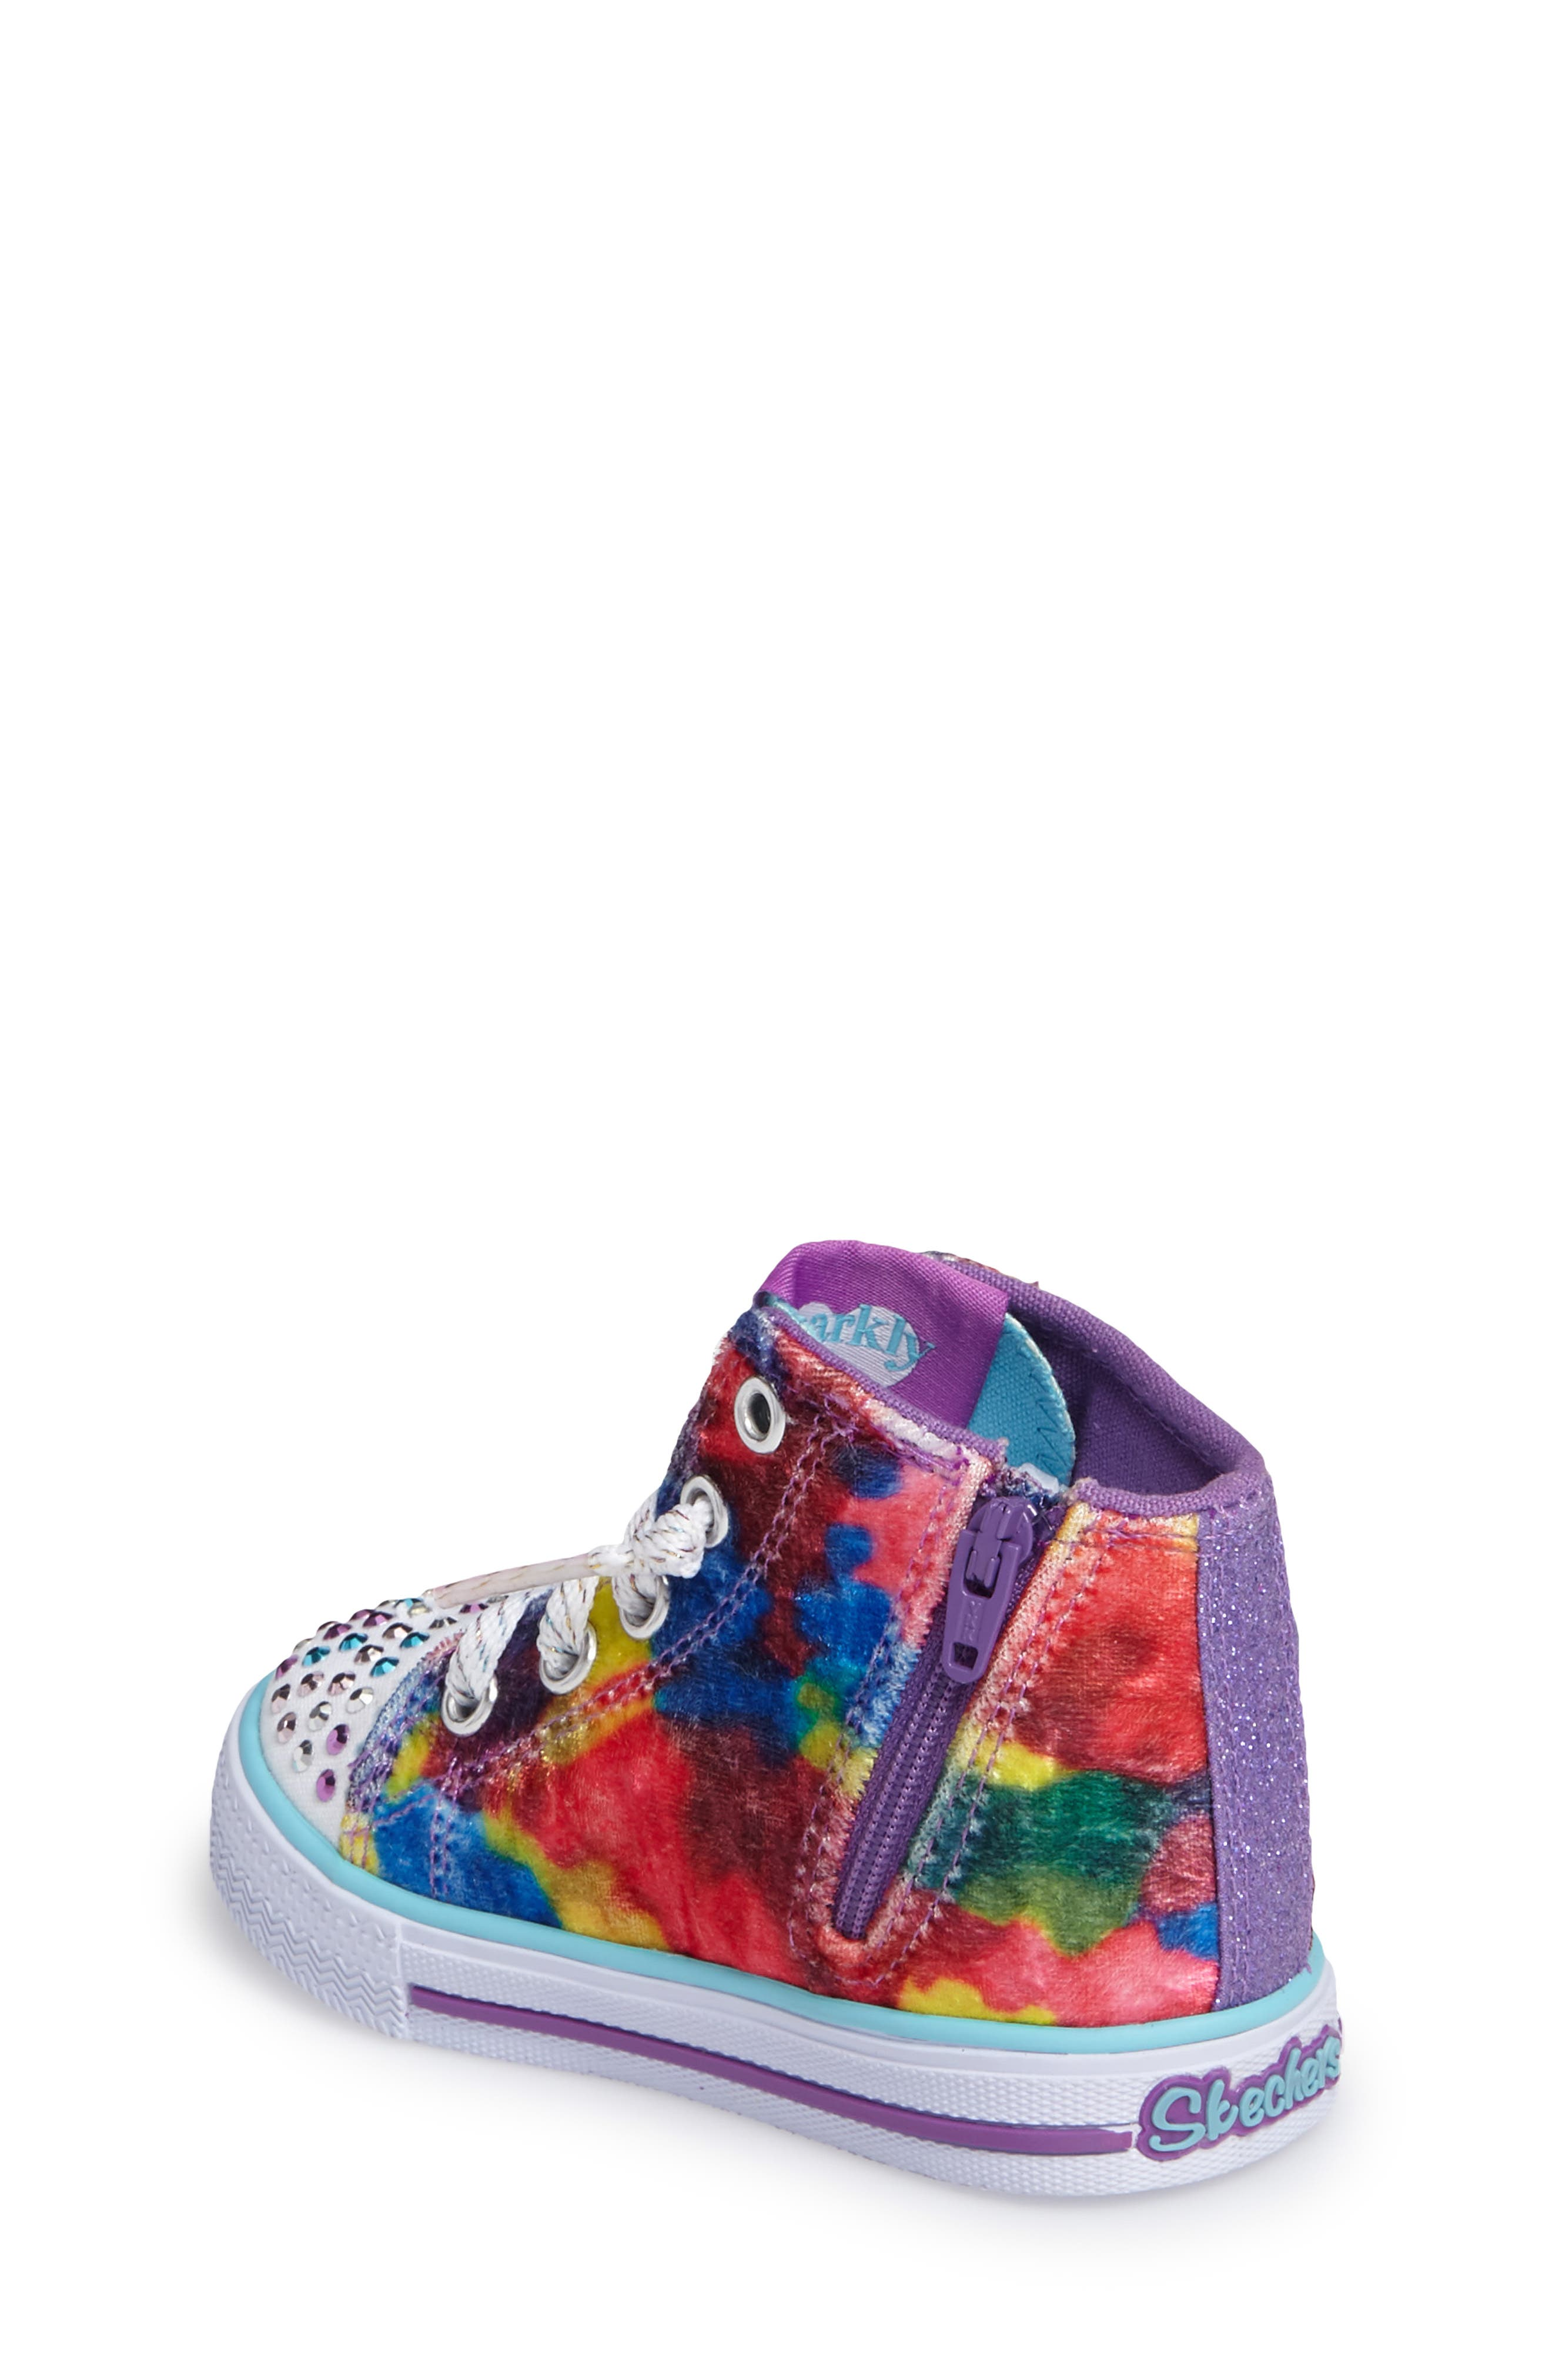 Twinkle Toes Shuffles Light-Up High Top Sneaker,                             Alternate thumbnail 2, color,                             650